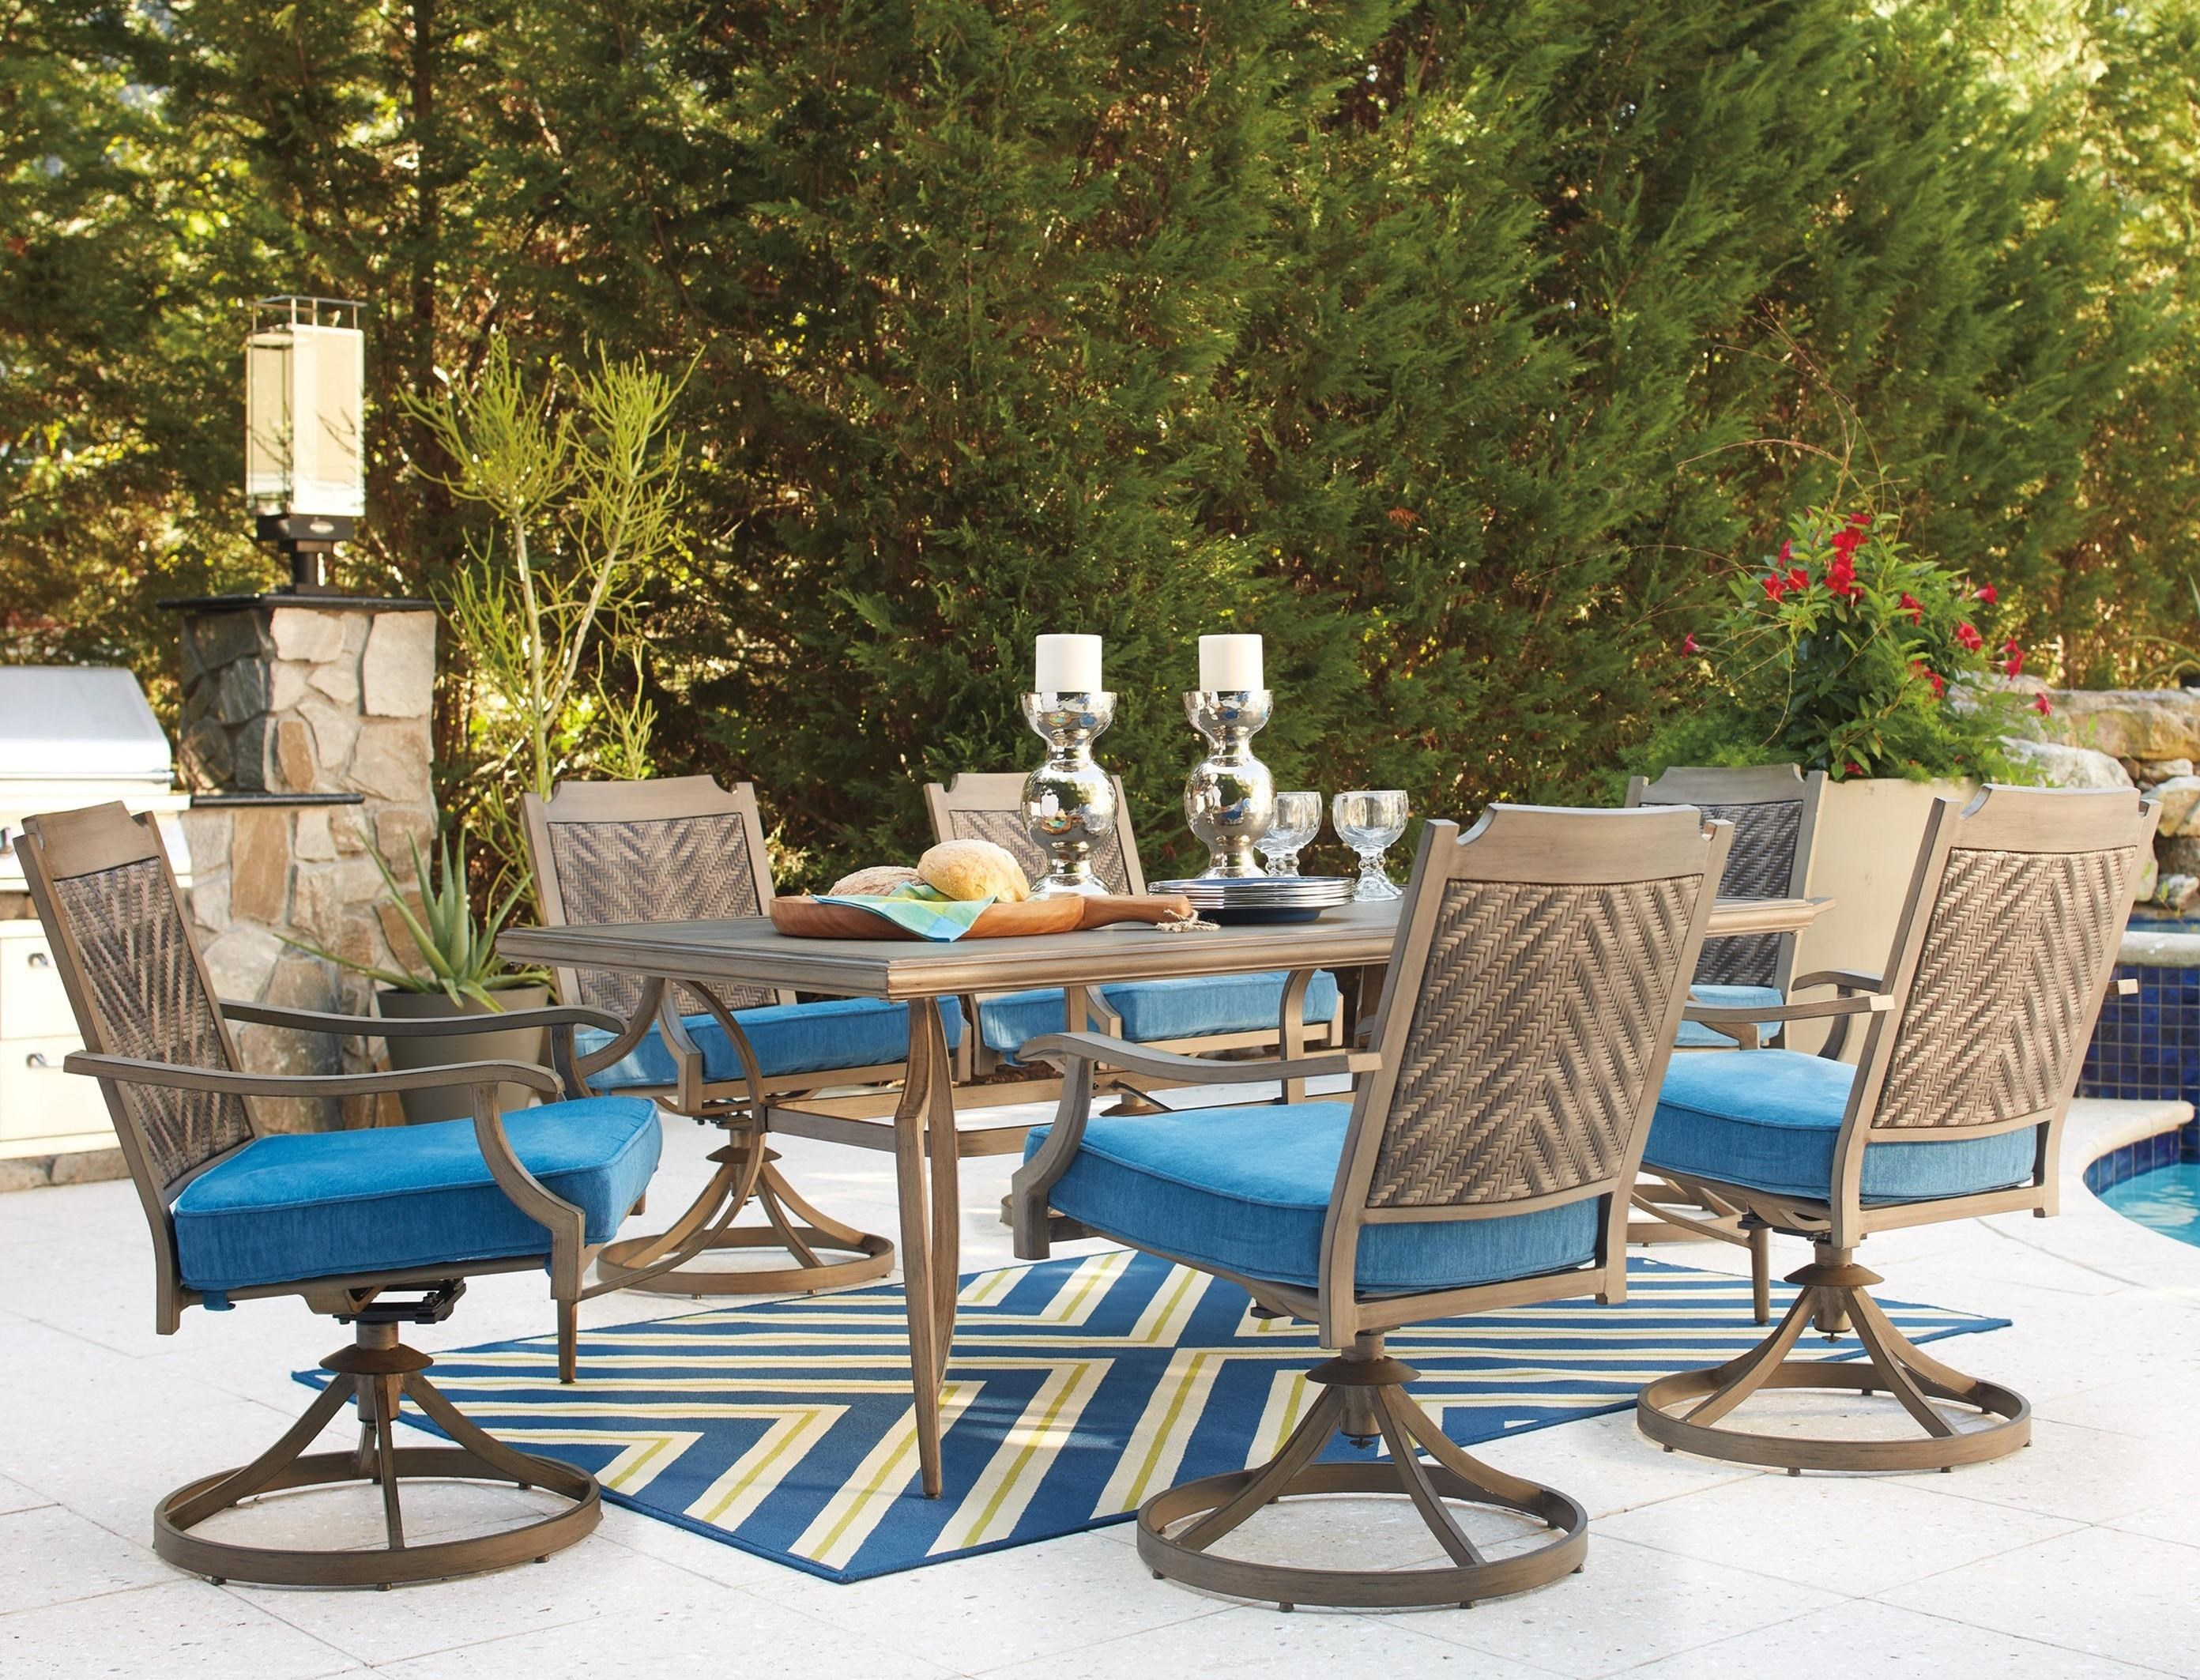 High Quality Signature Design By Ashley Partanna Outdoor Dining Table Set With Swivel  Chairs   John V Schultz Furniture   Outdoor Dining Sets